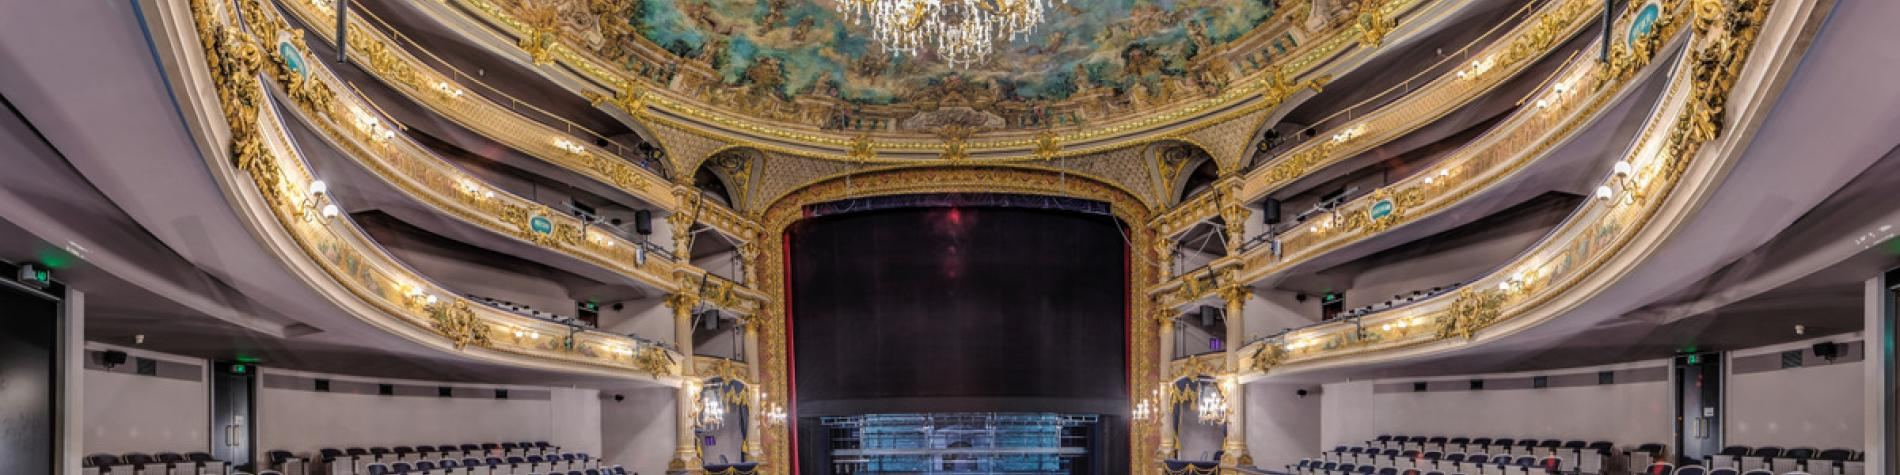 Namur gourmande - Royal Theatre